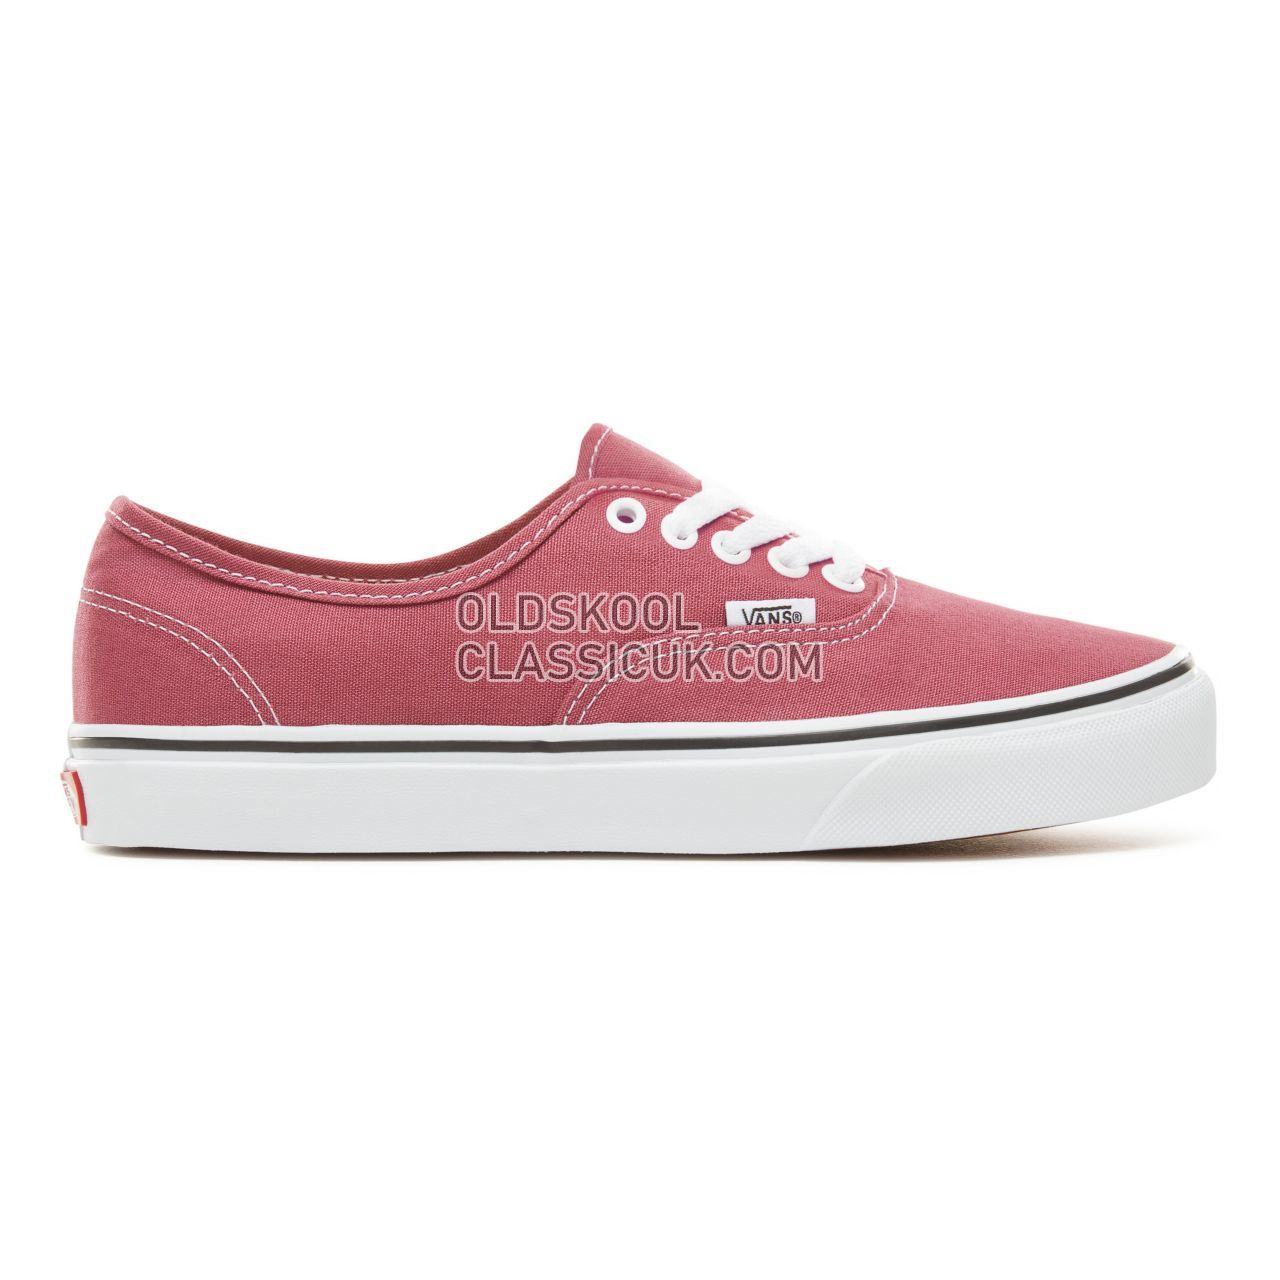 Vans Color Theory Authentic Sneakers (Unisex) Mens Dry Rose/True White VA38EMU64 Shoes